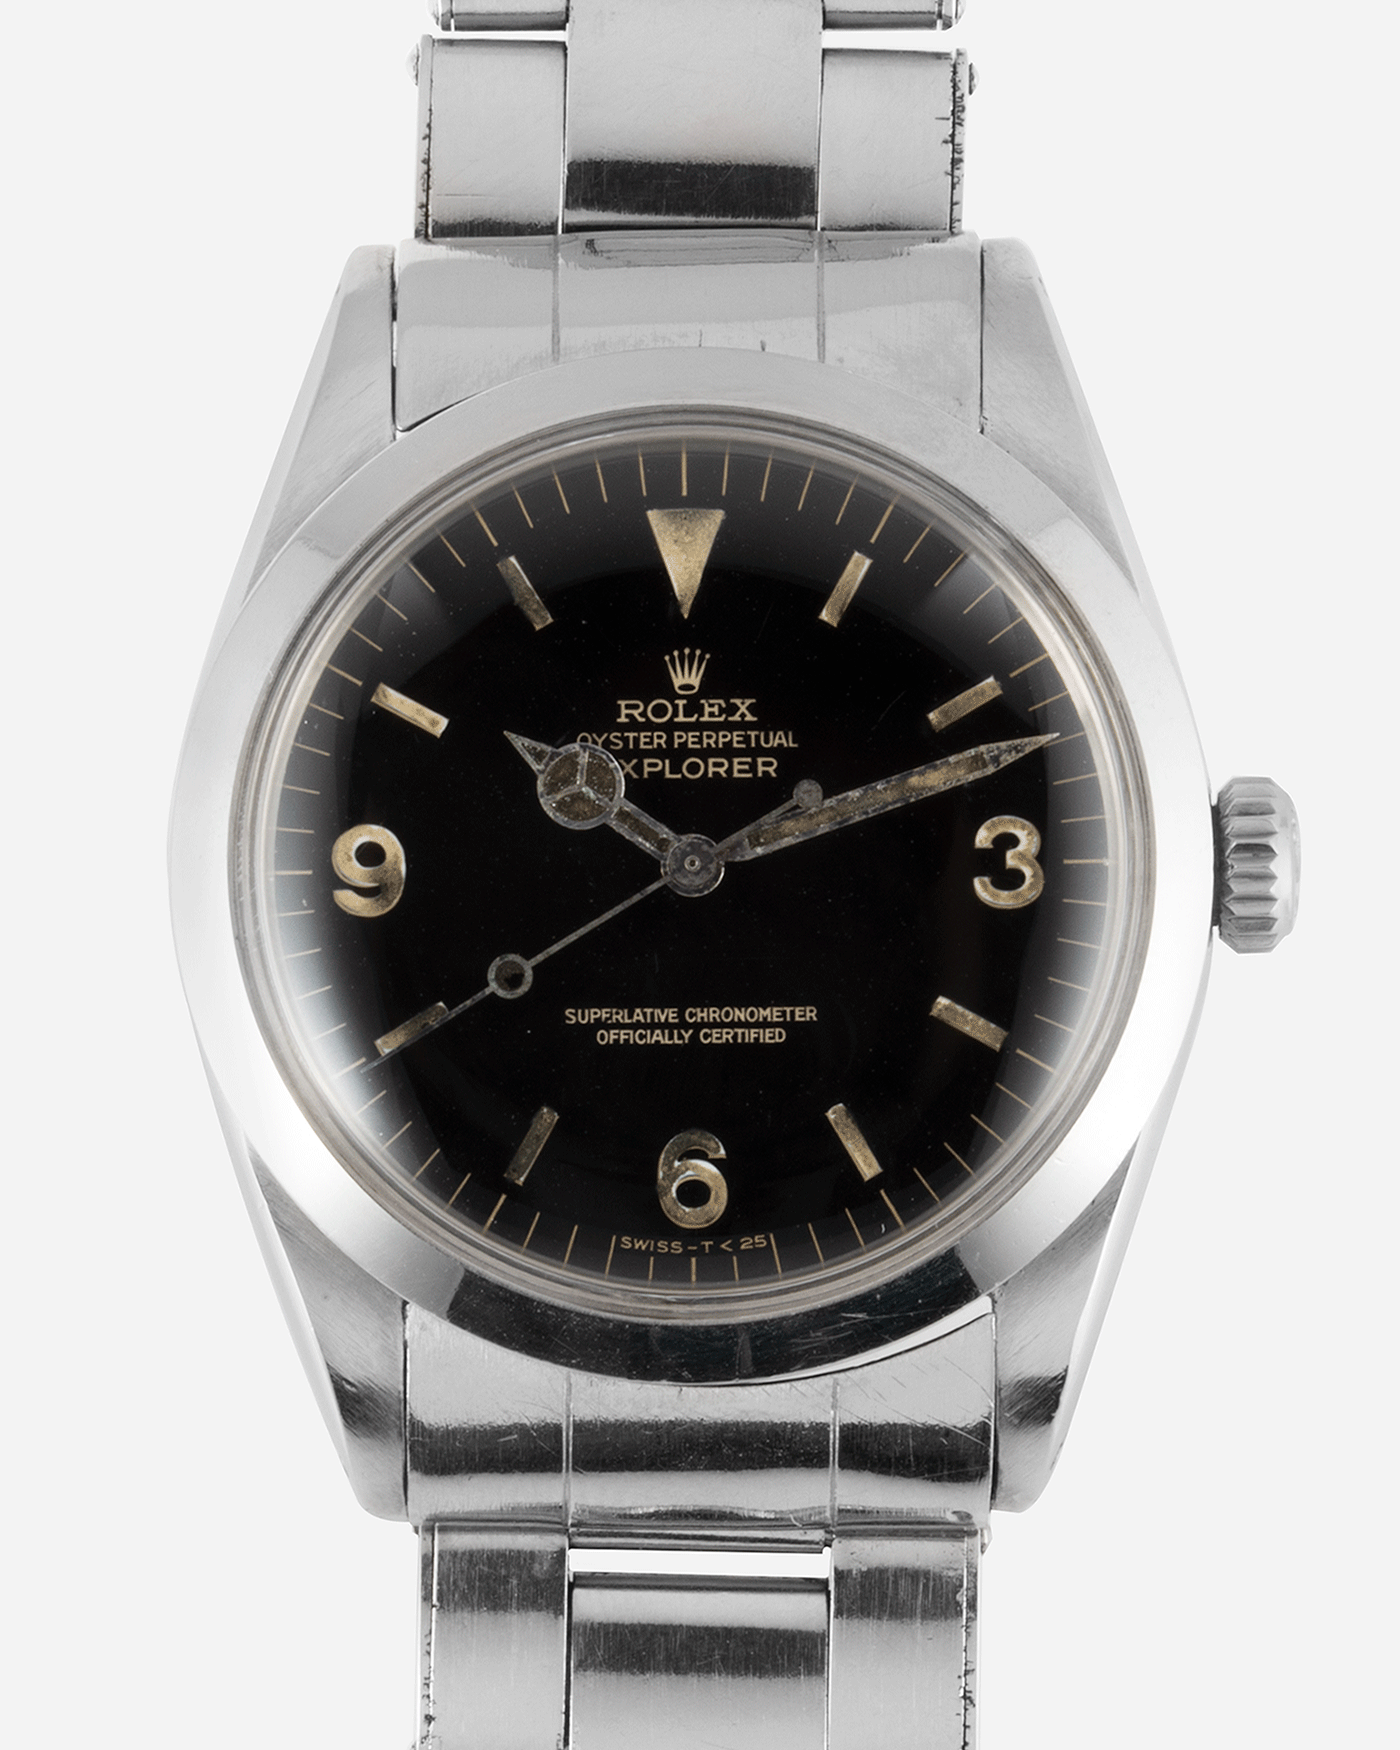 Rolex Explorer Ref. 1016  Gilt Gloss Vintage Sport Watch | S.Song Vintage Watches For Sale